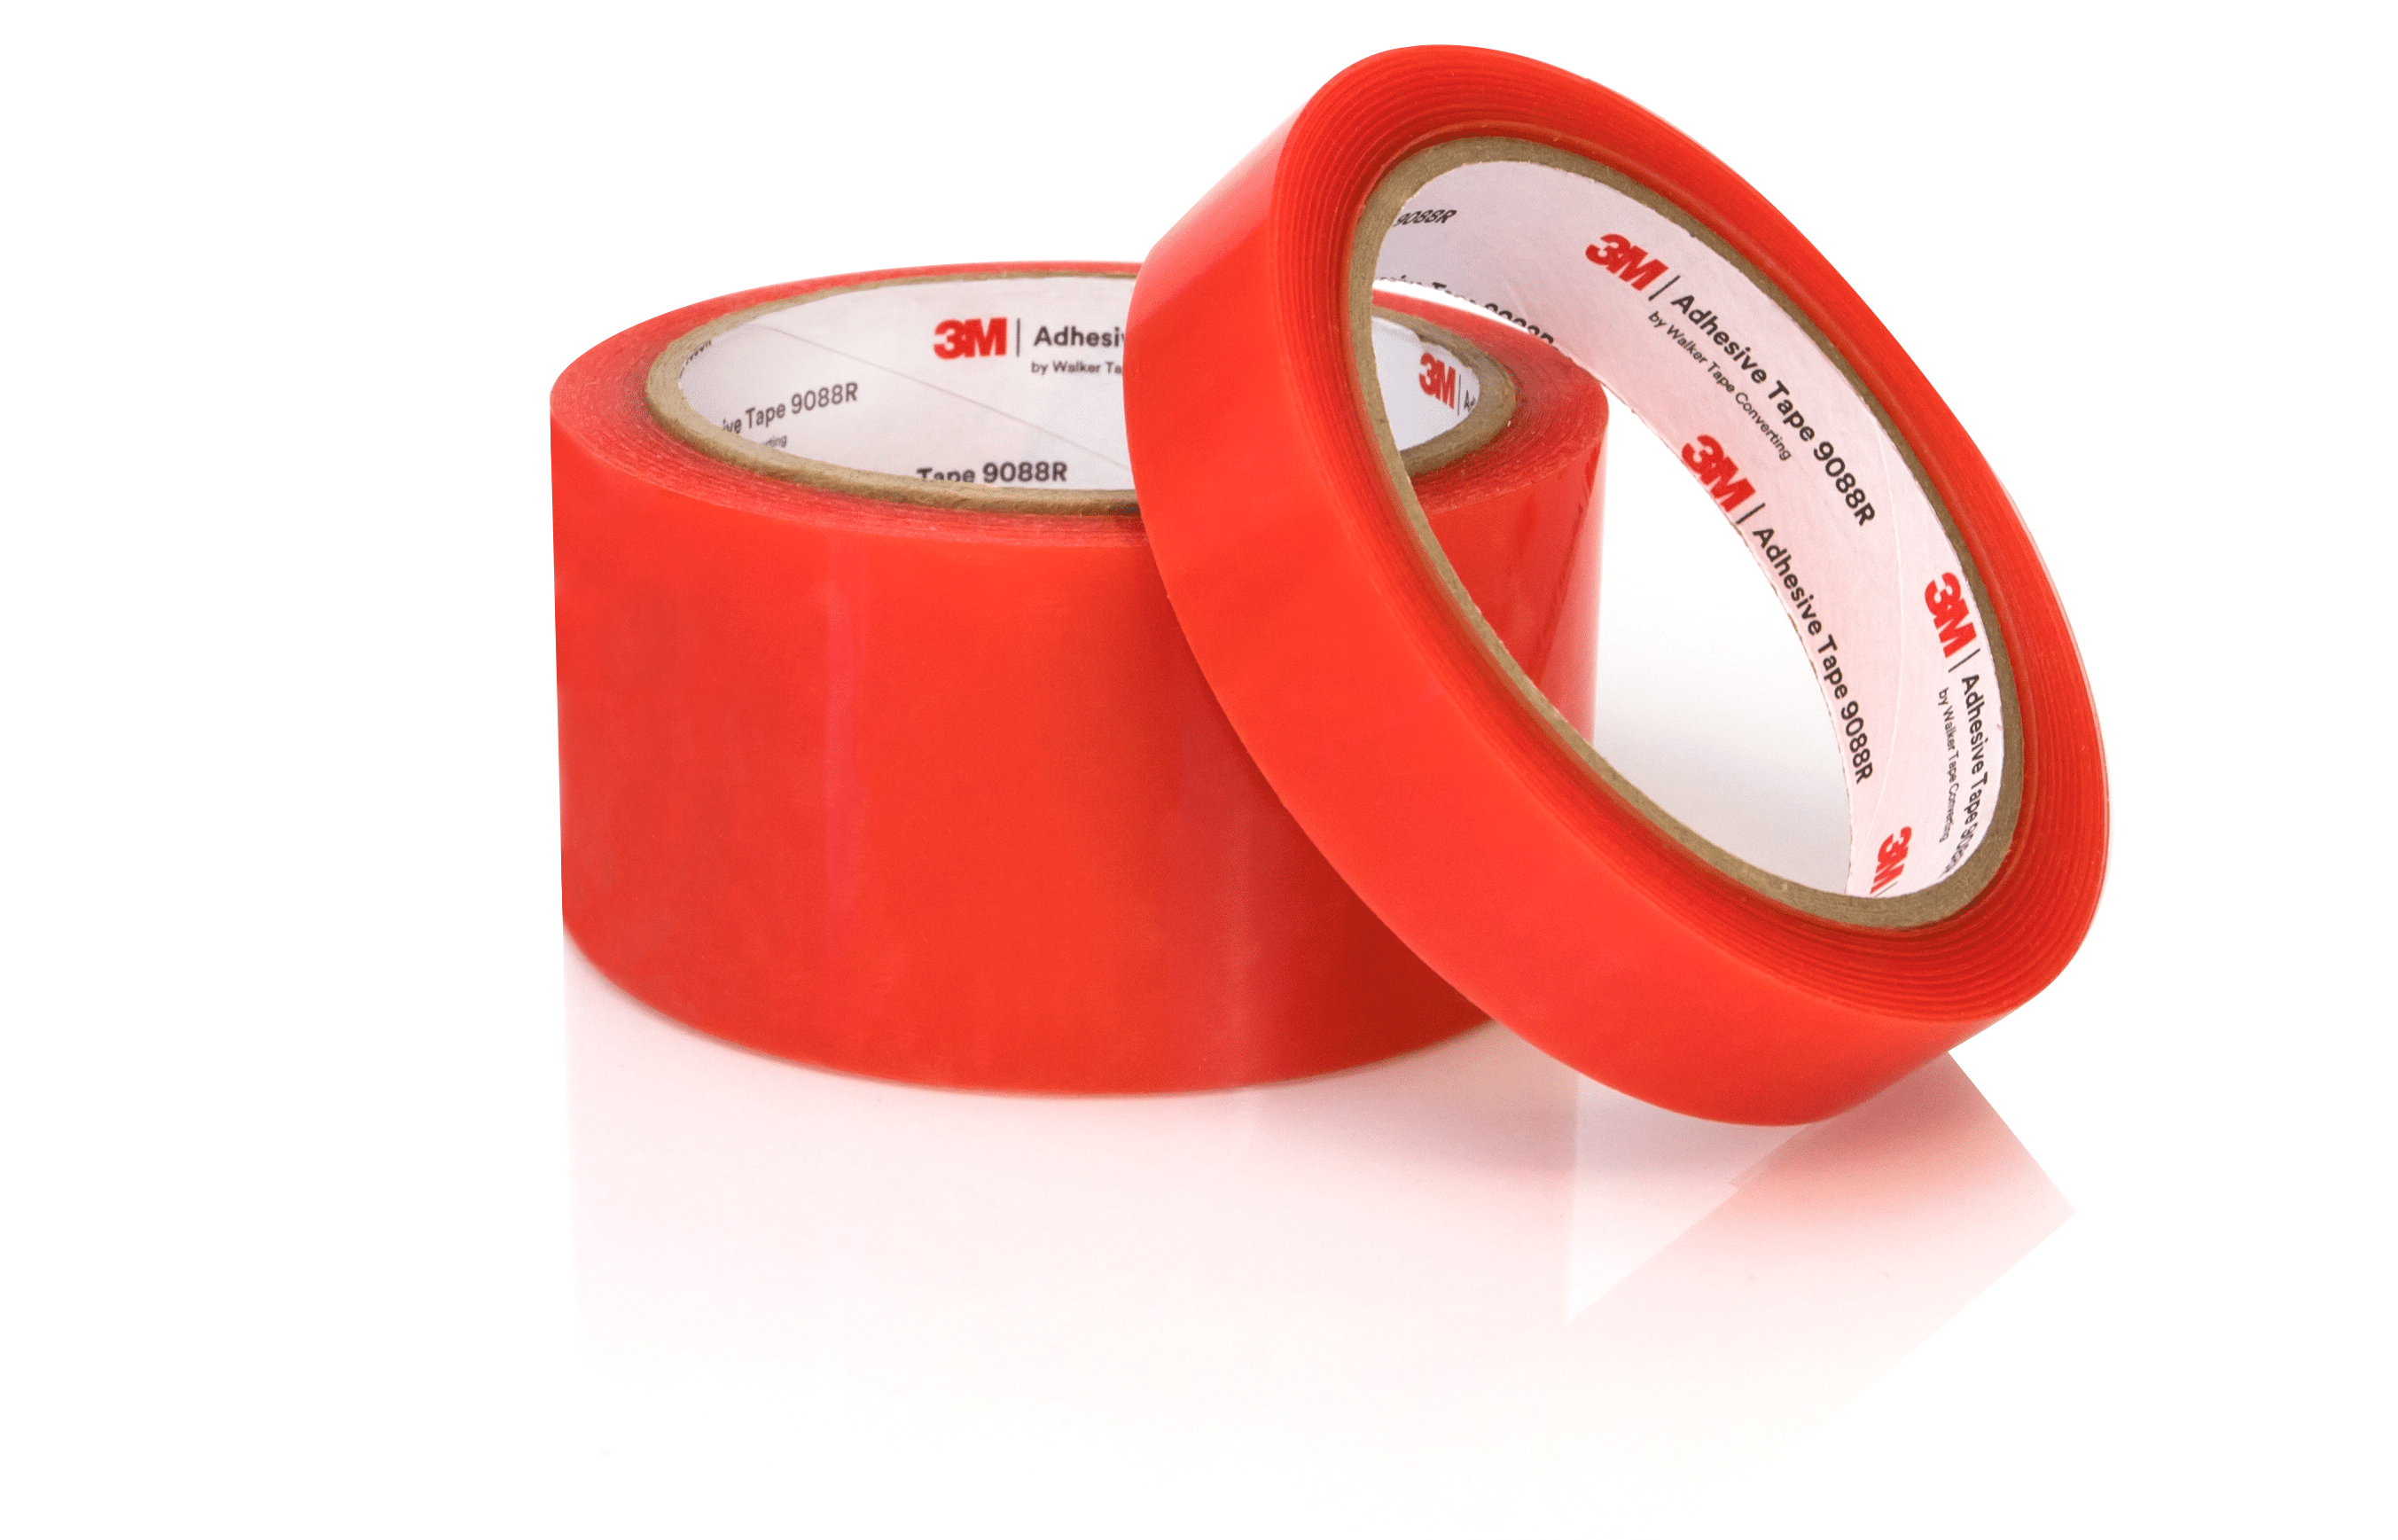 3M Adhesive Tape 9088R by Walker Tape Converting home callout